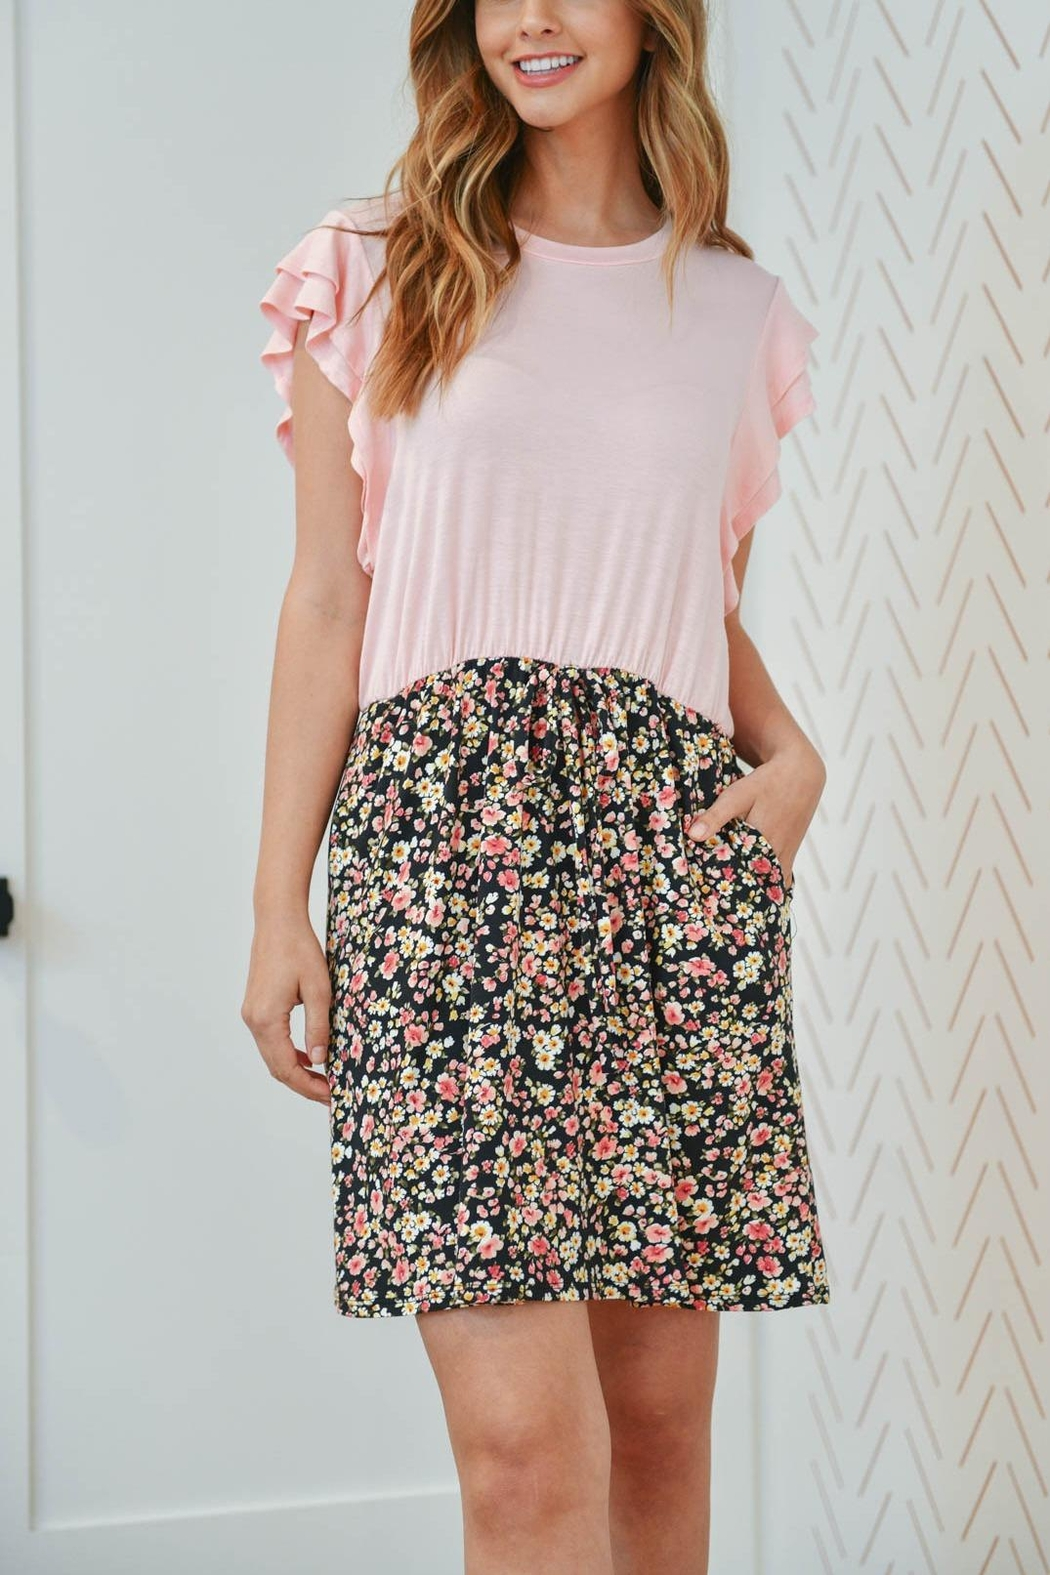 Riah Fashion Cap-Sleeve-Solid-Top-Floral-Contrast-Dress - Front Cropped Image